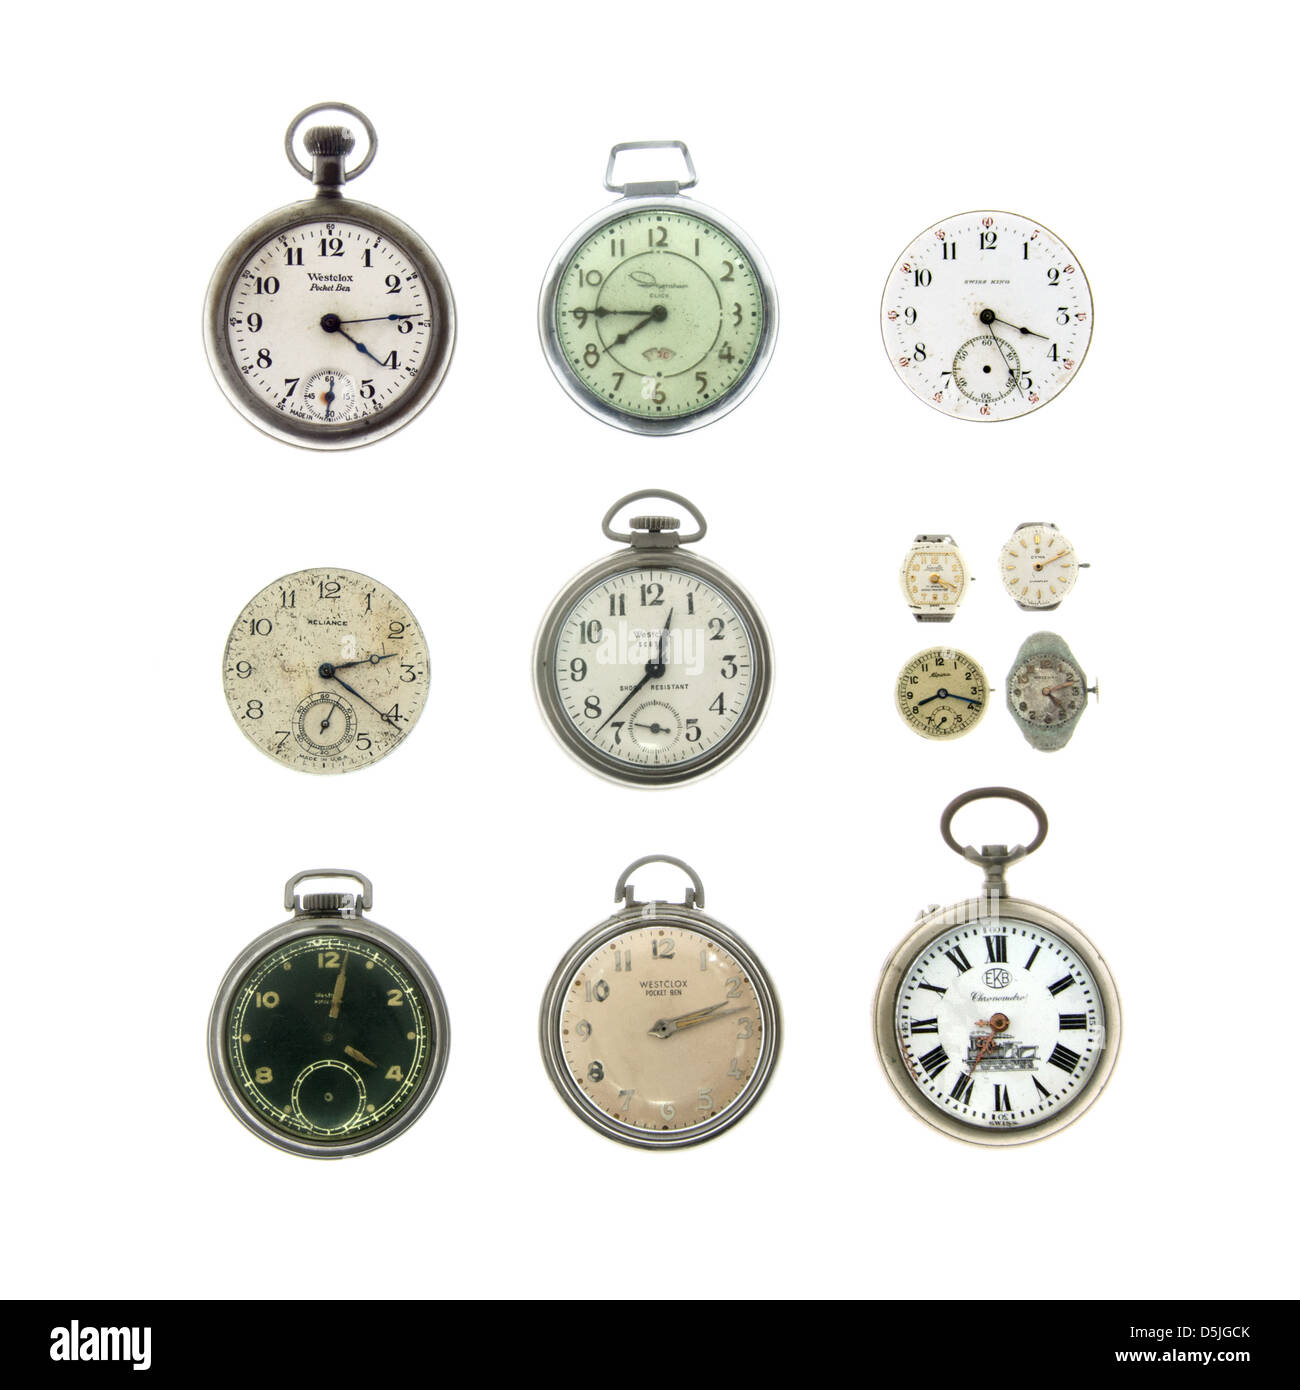 A collection of antique and vintage pocket watches and wristwatches on a white background. Stock Photo